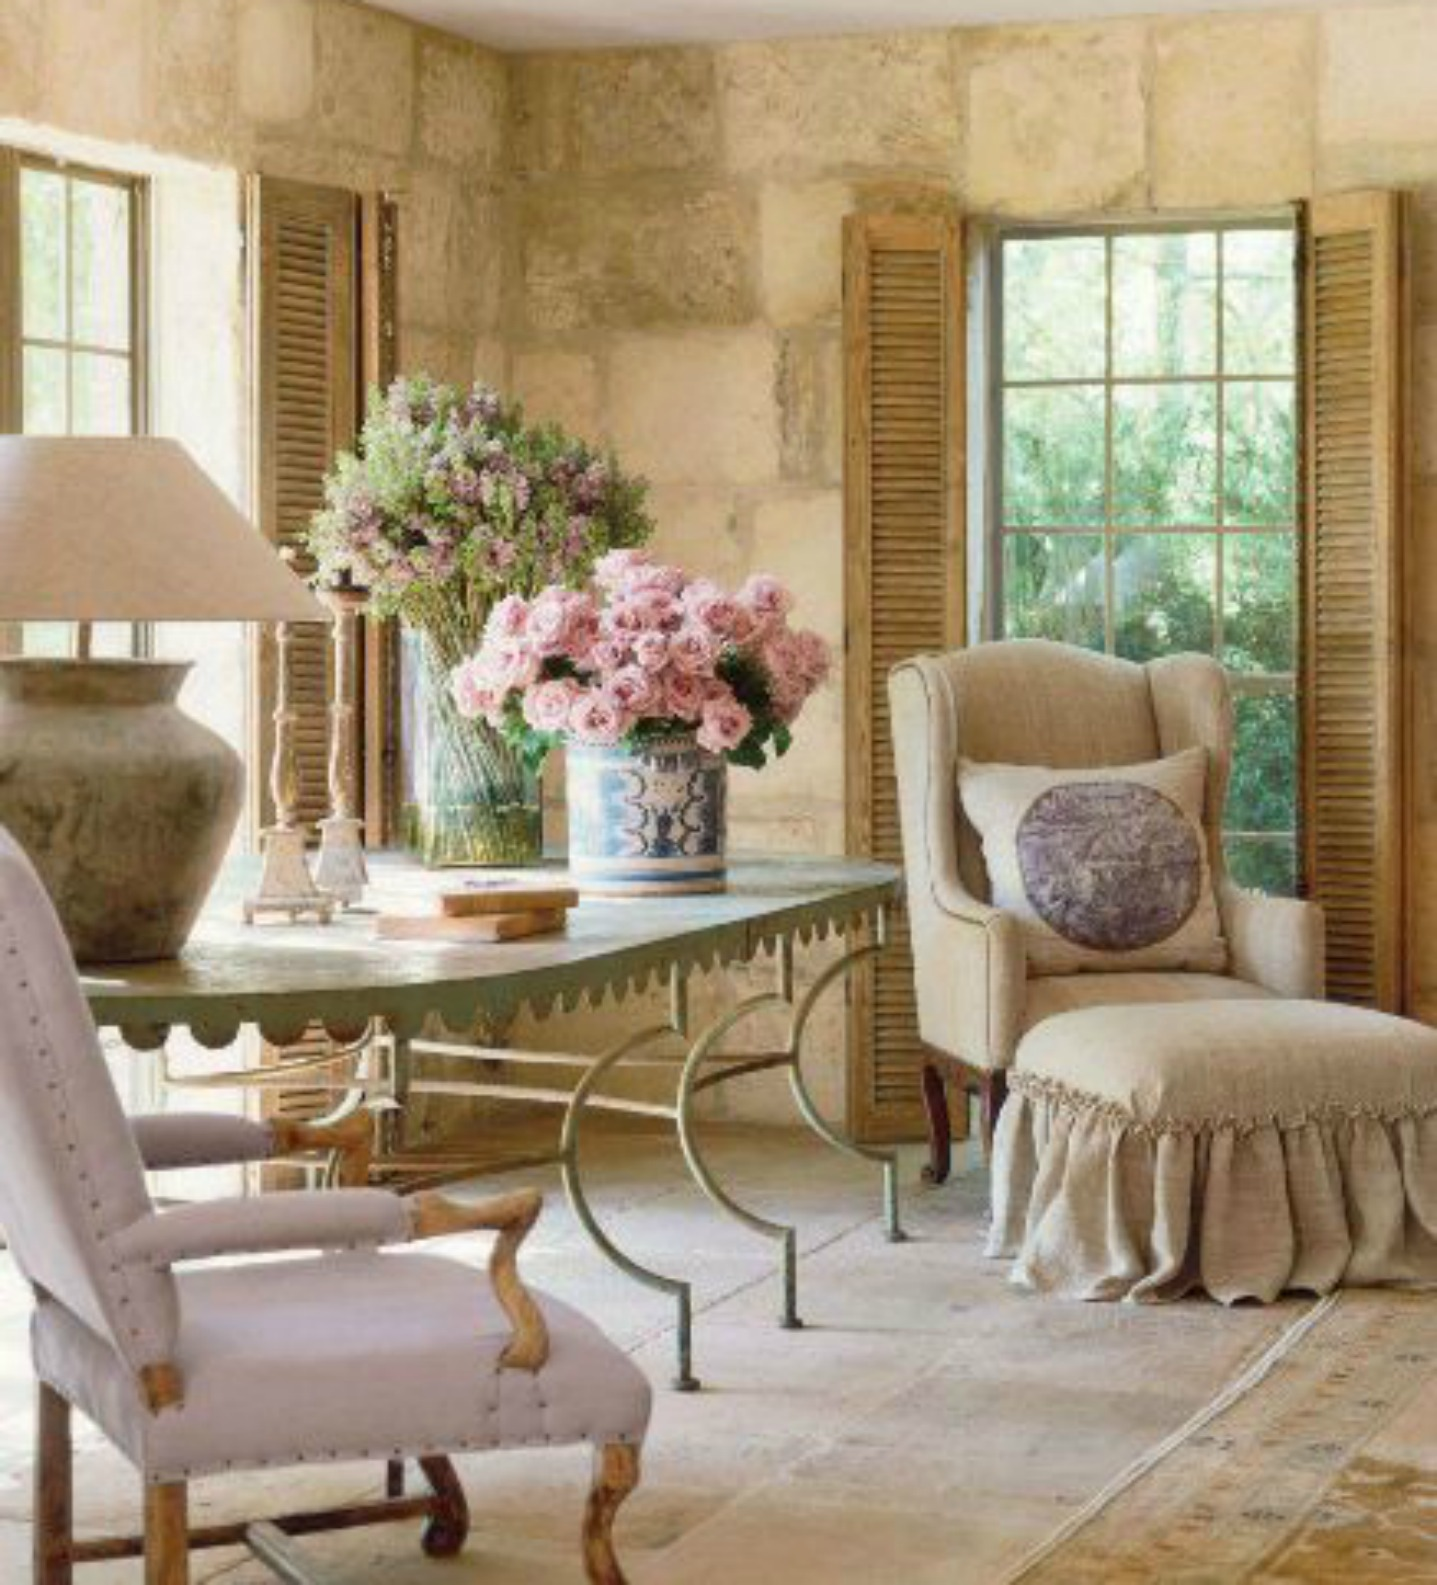 Country Farmhouse Living Room: 23 European And French Farmhouse Decor Ideas To Inspire